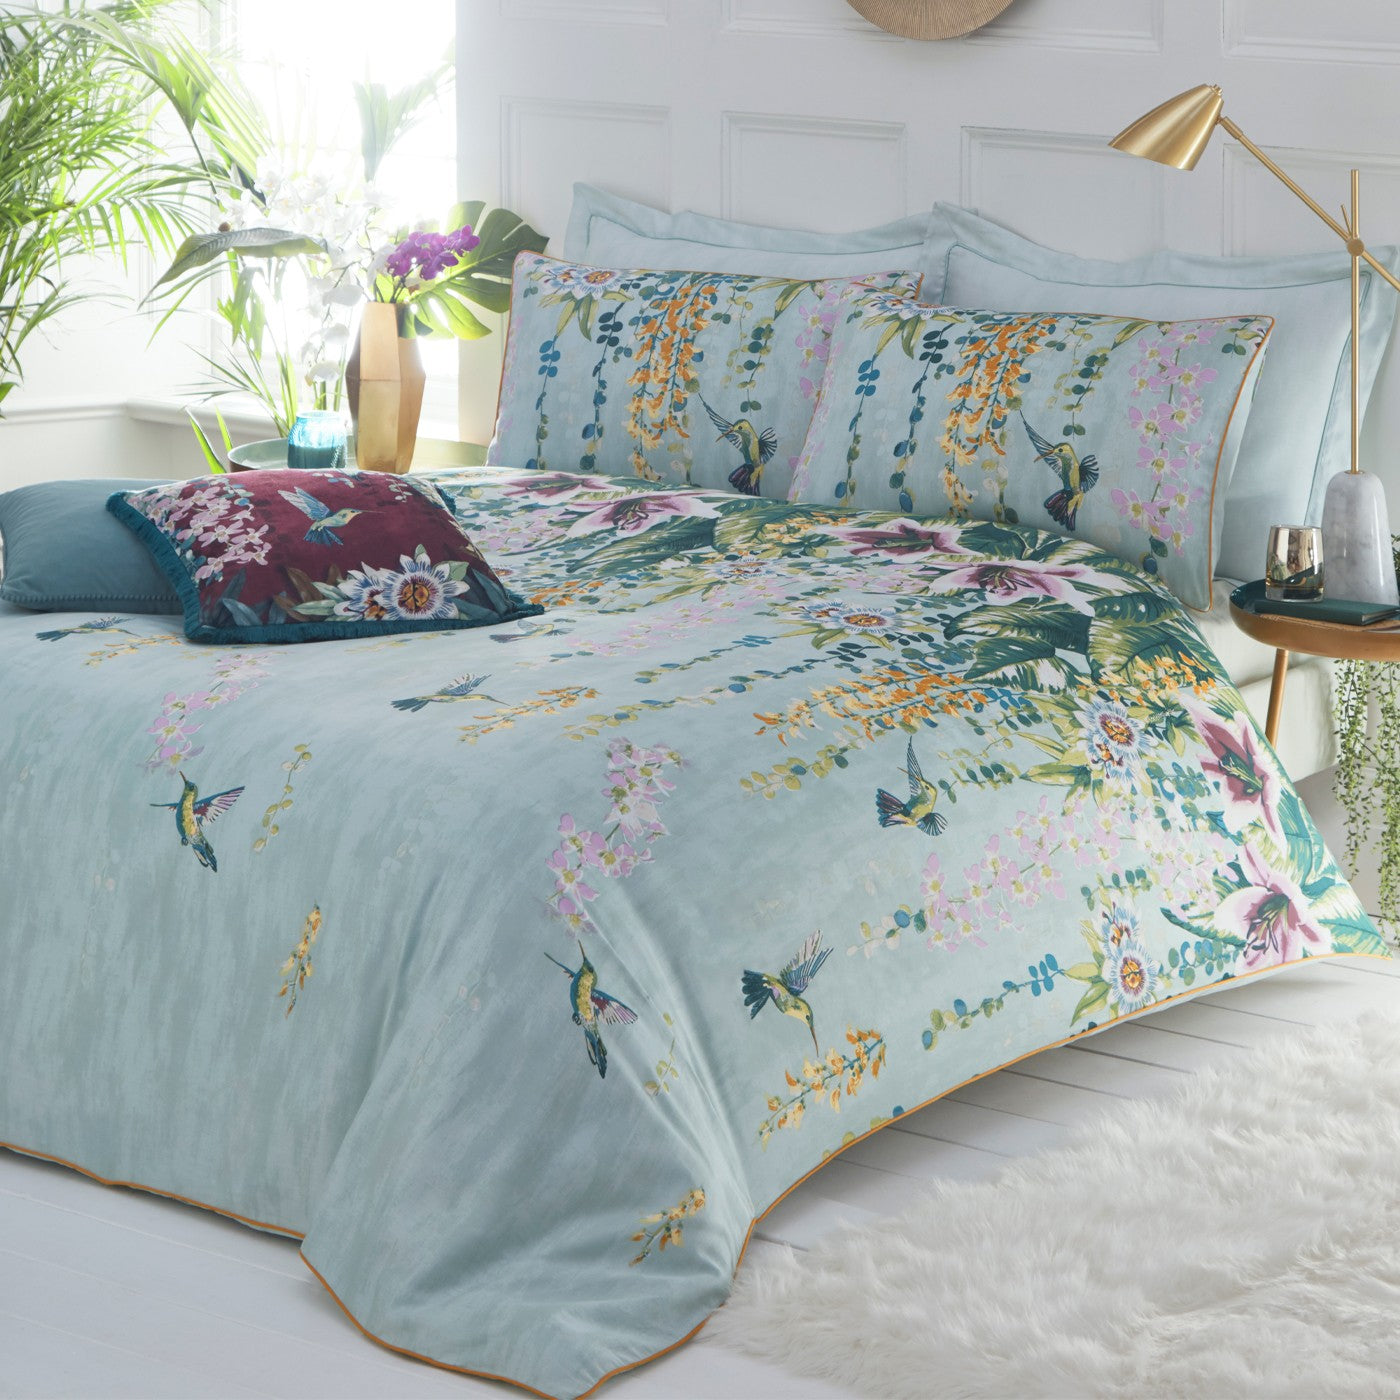 Hanging Garden Bedlinen 100% Cotton